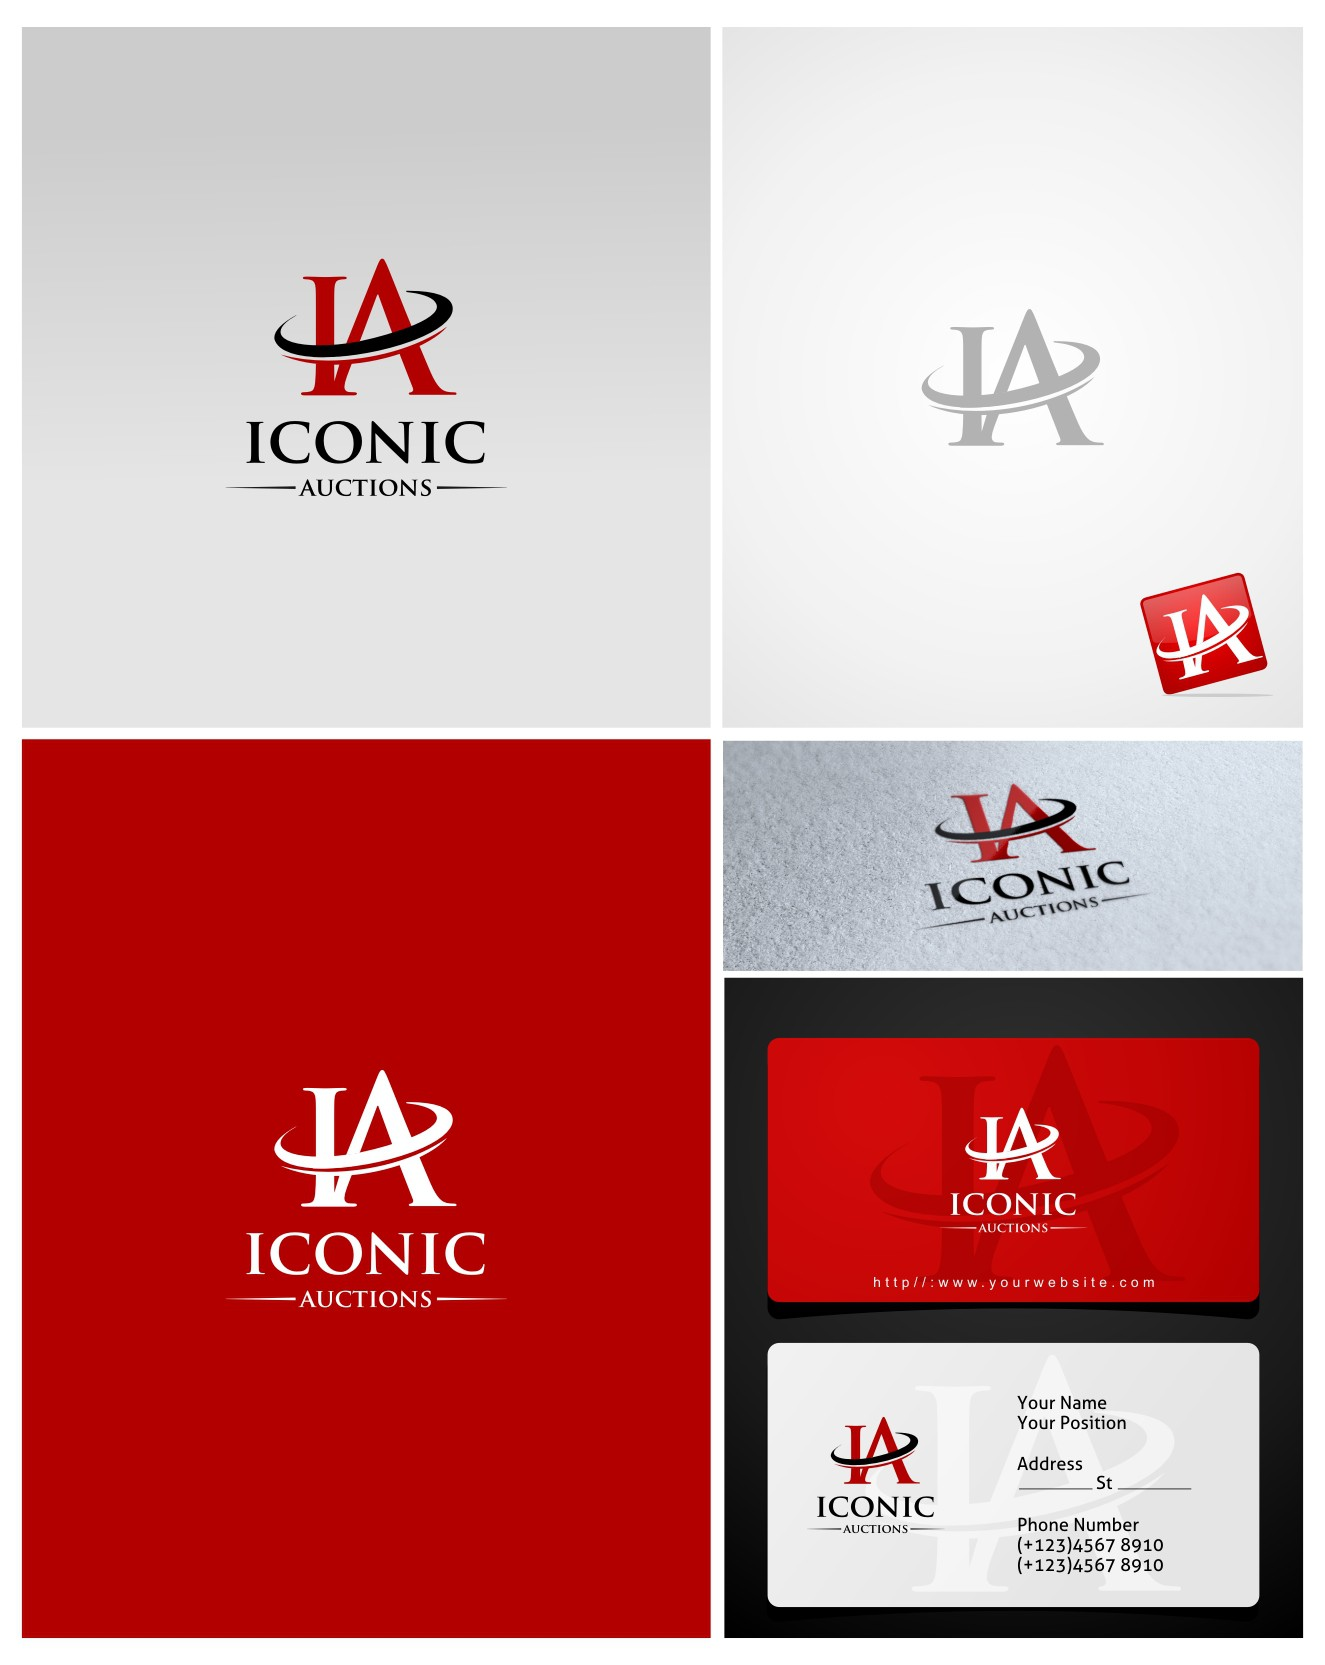 New logo wanted for Iconic Auctions, Iconic or IA